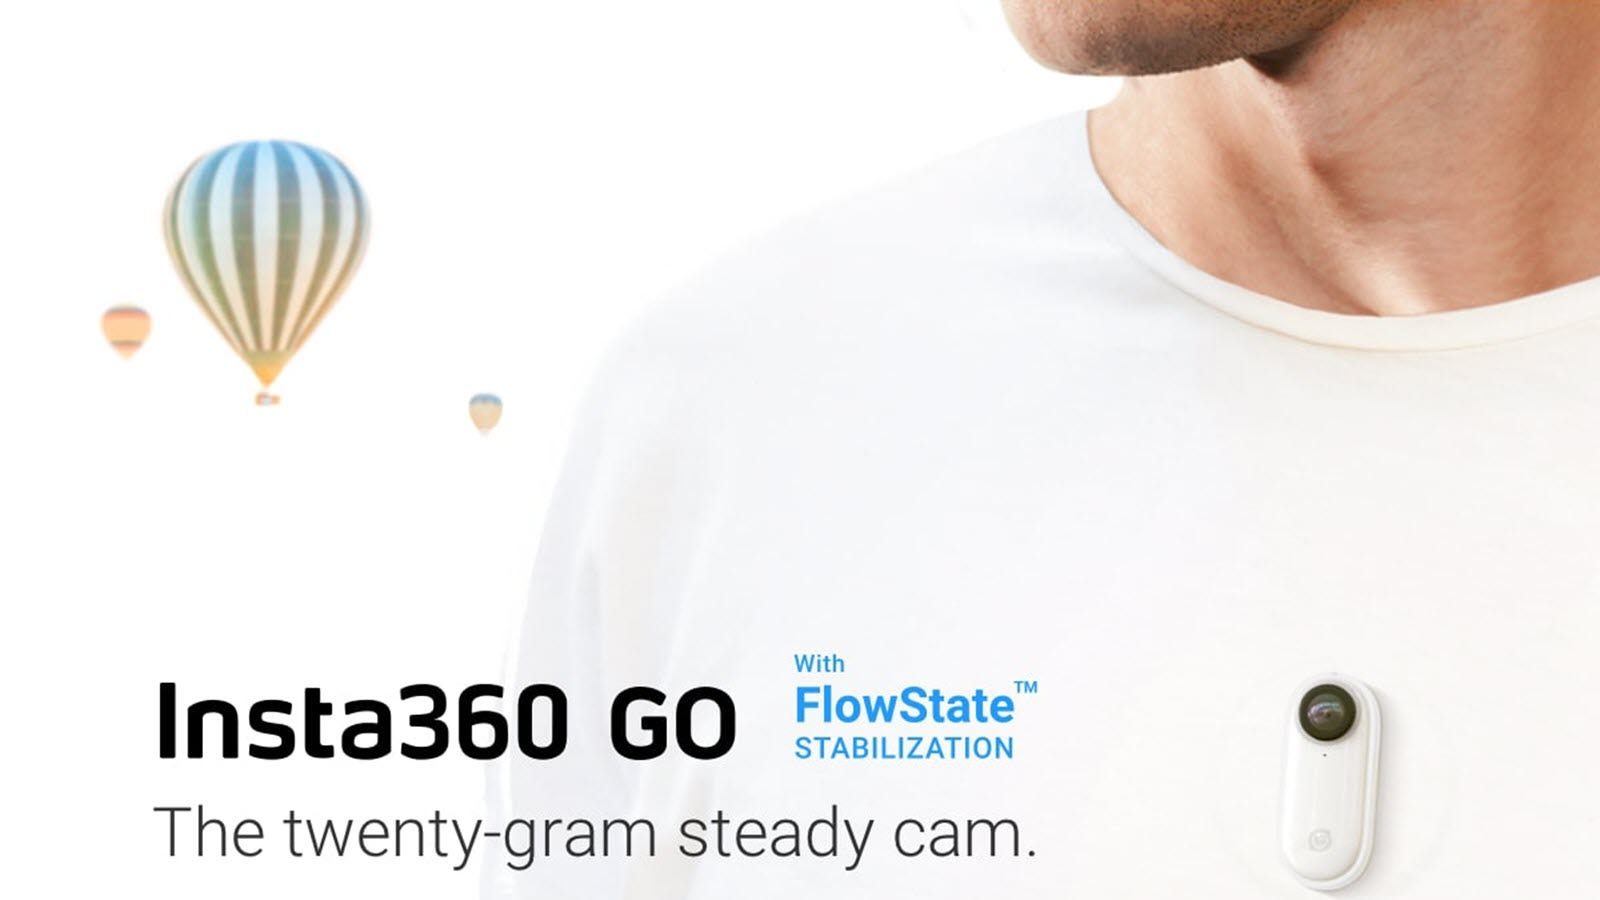 The Insta360 Go camera mounted to a person's chest.